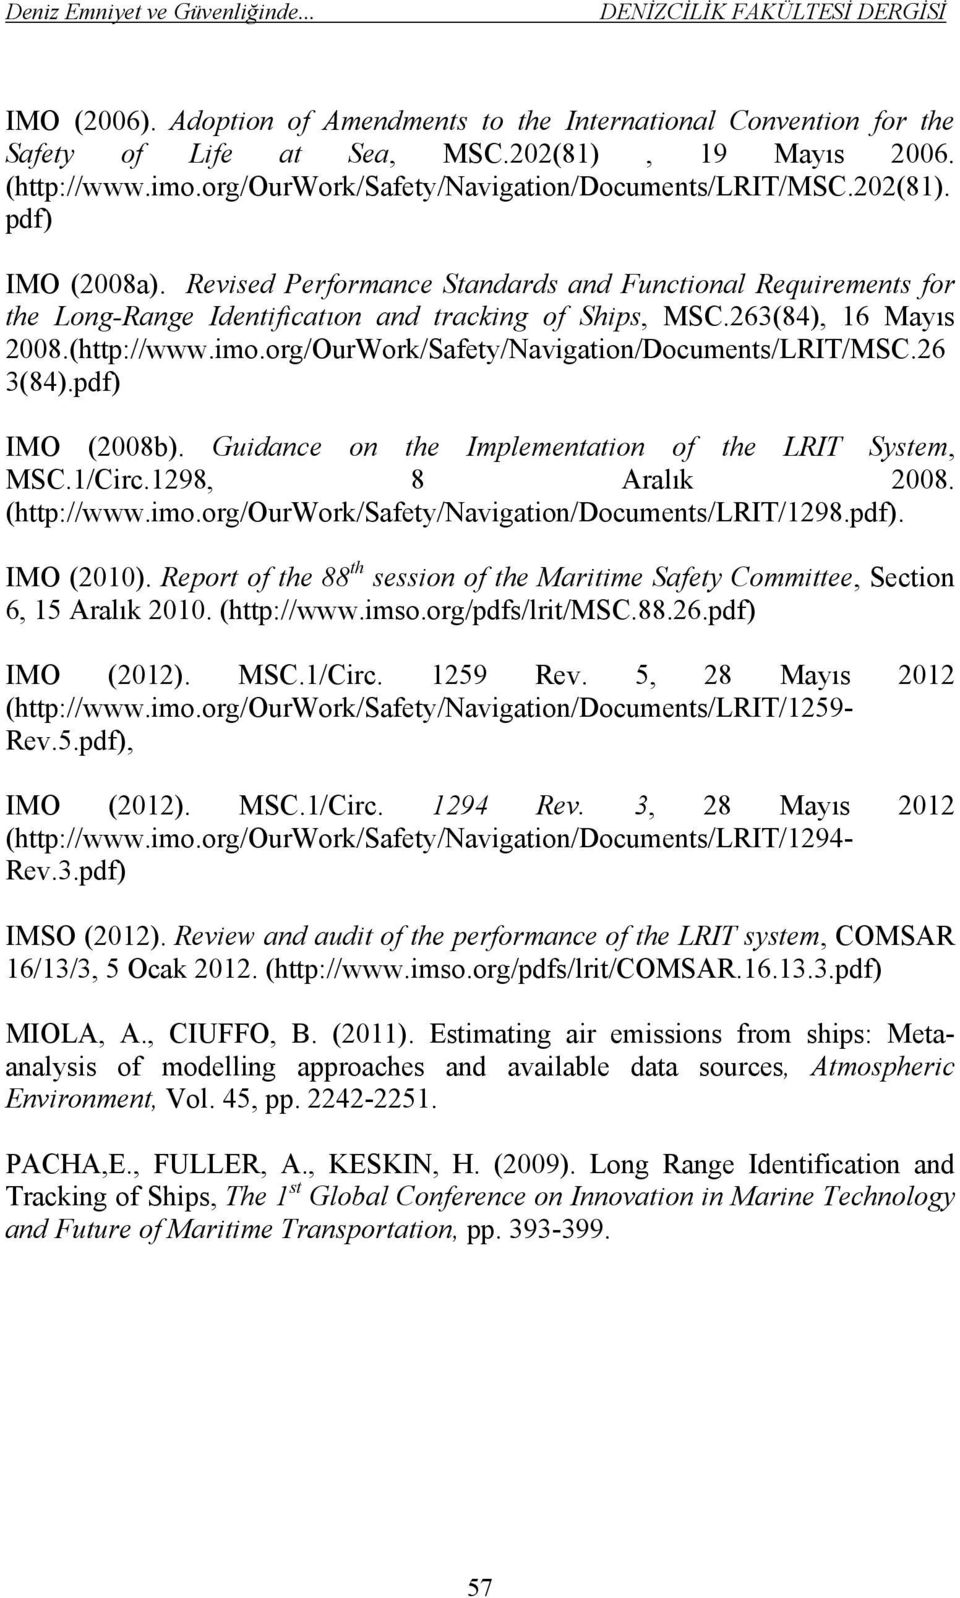 org/OurWork/Safety/Navigation/Documents/LRIT/MSC.26 3(84).pdf) IMO (2008b). Guidance on the Implementation of the LRIT System, MSC.1/Circ.1298, 8 Aralık 2008. (http://www.imo.